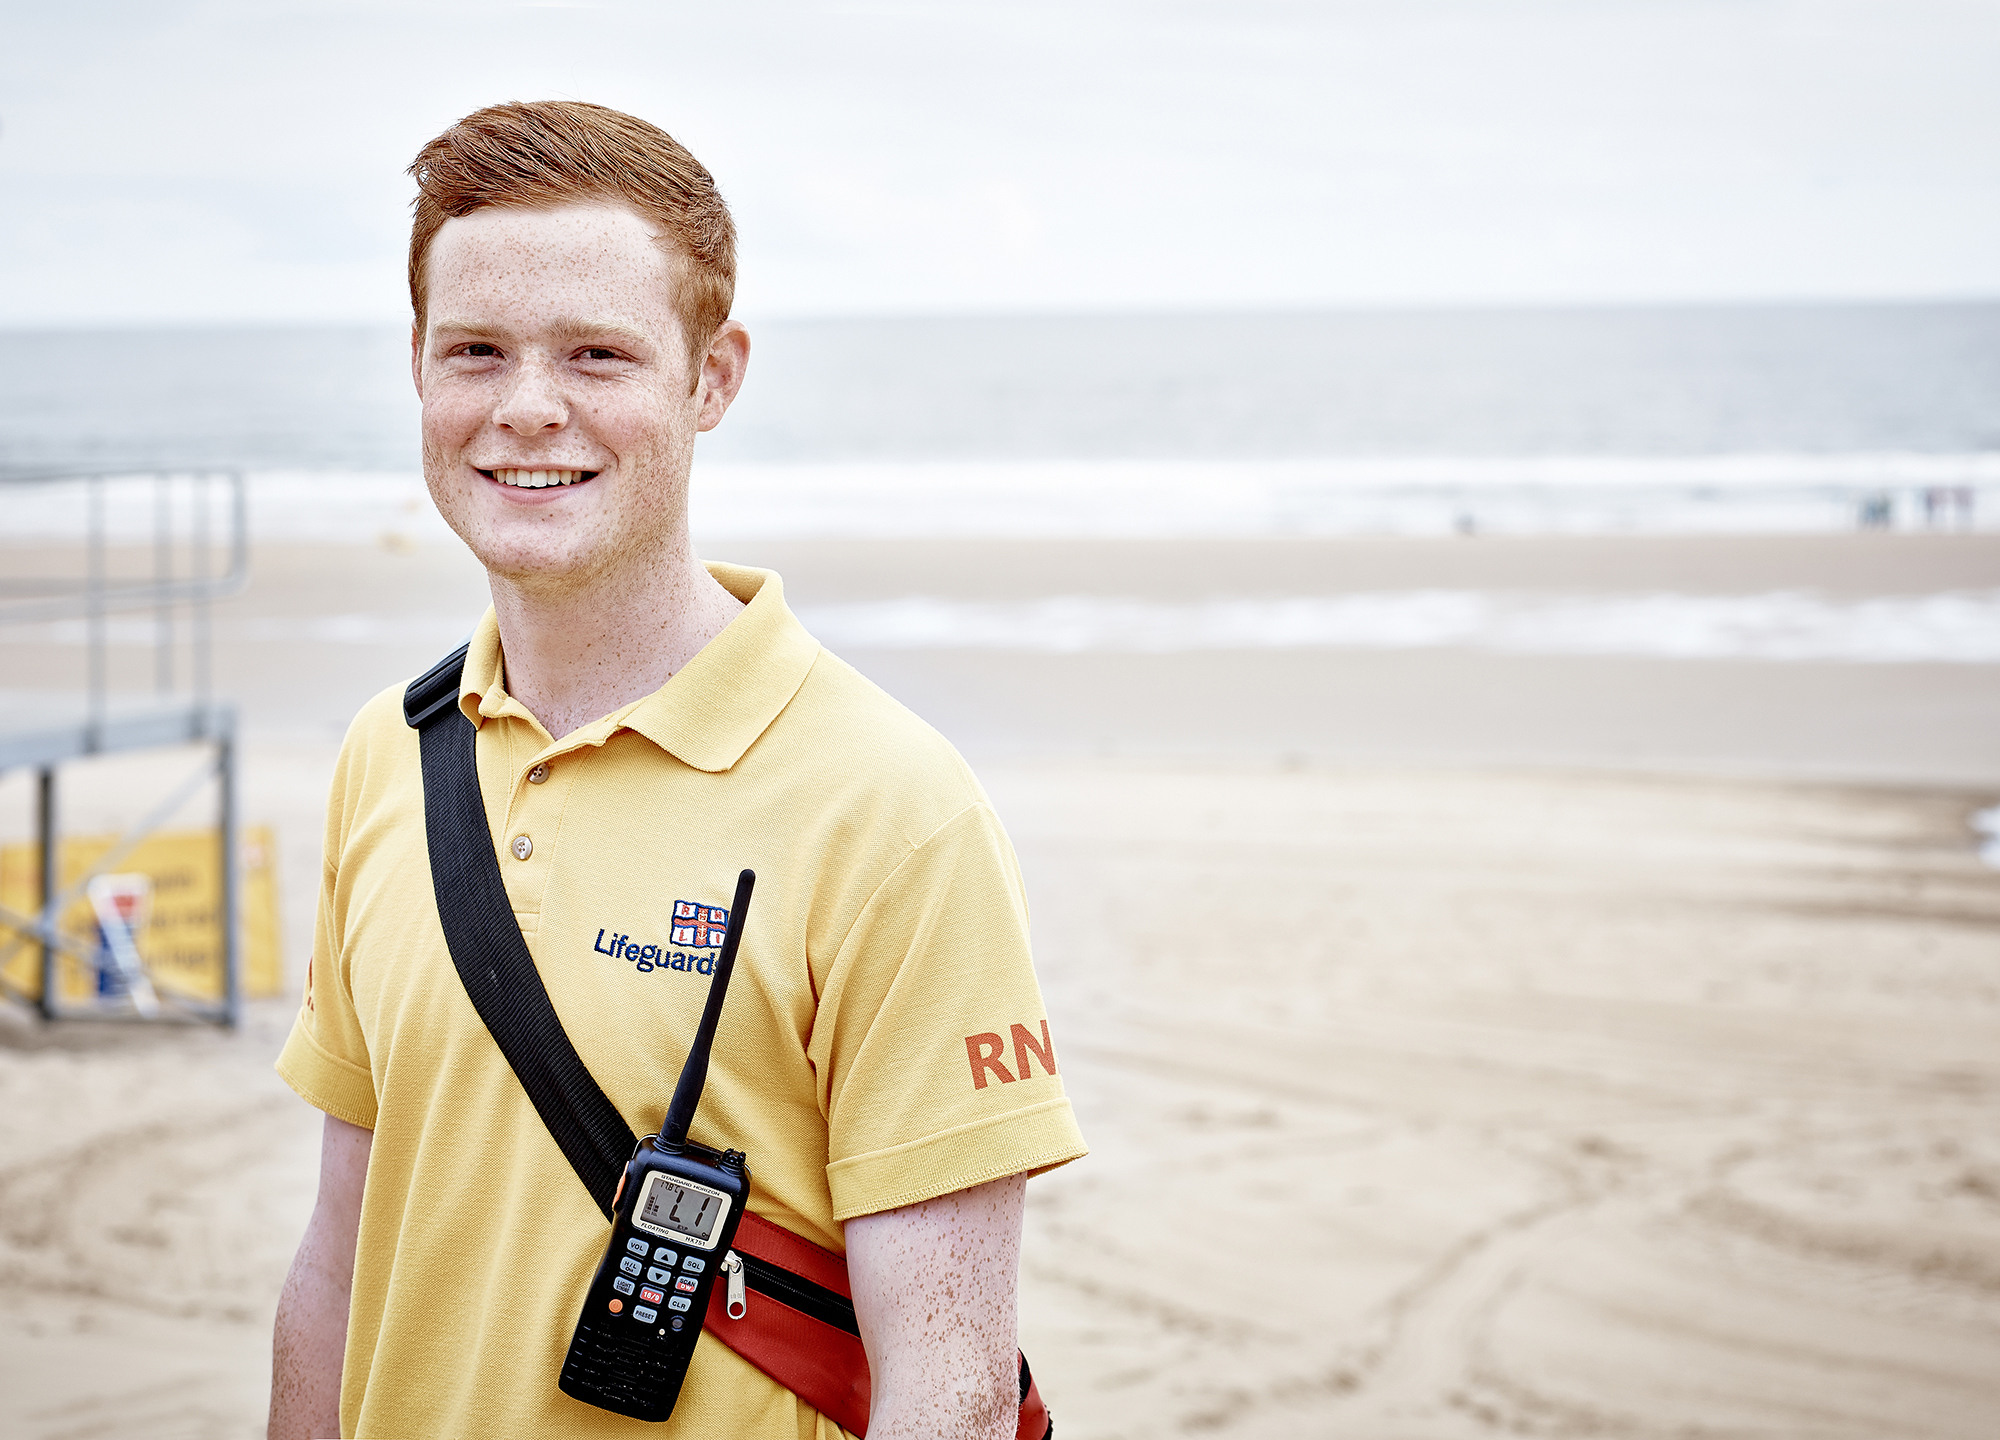 John Donohue - beach lifeguard